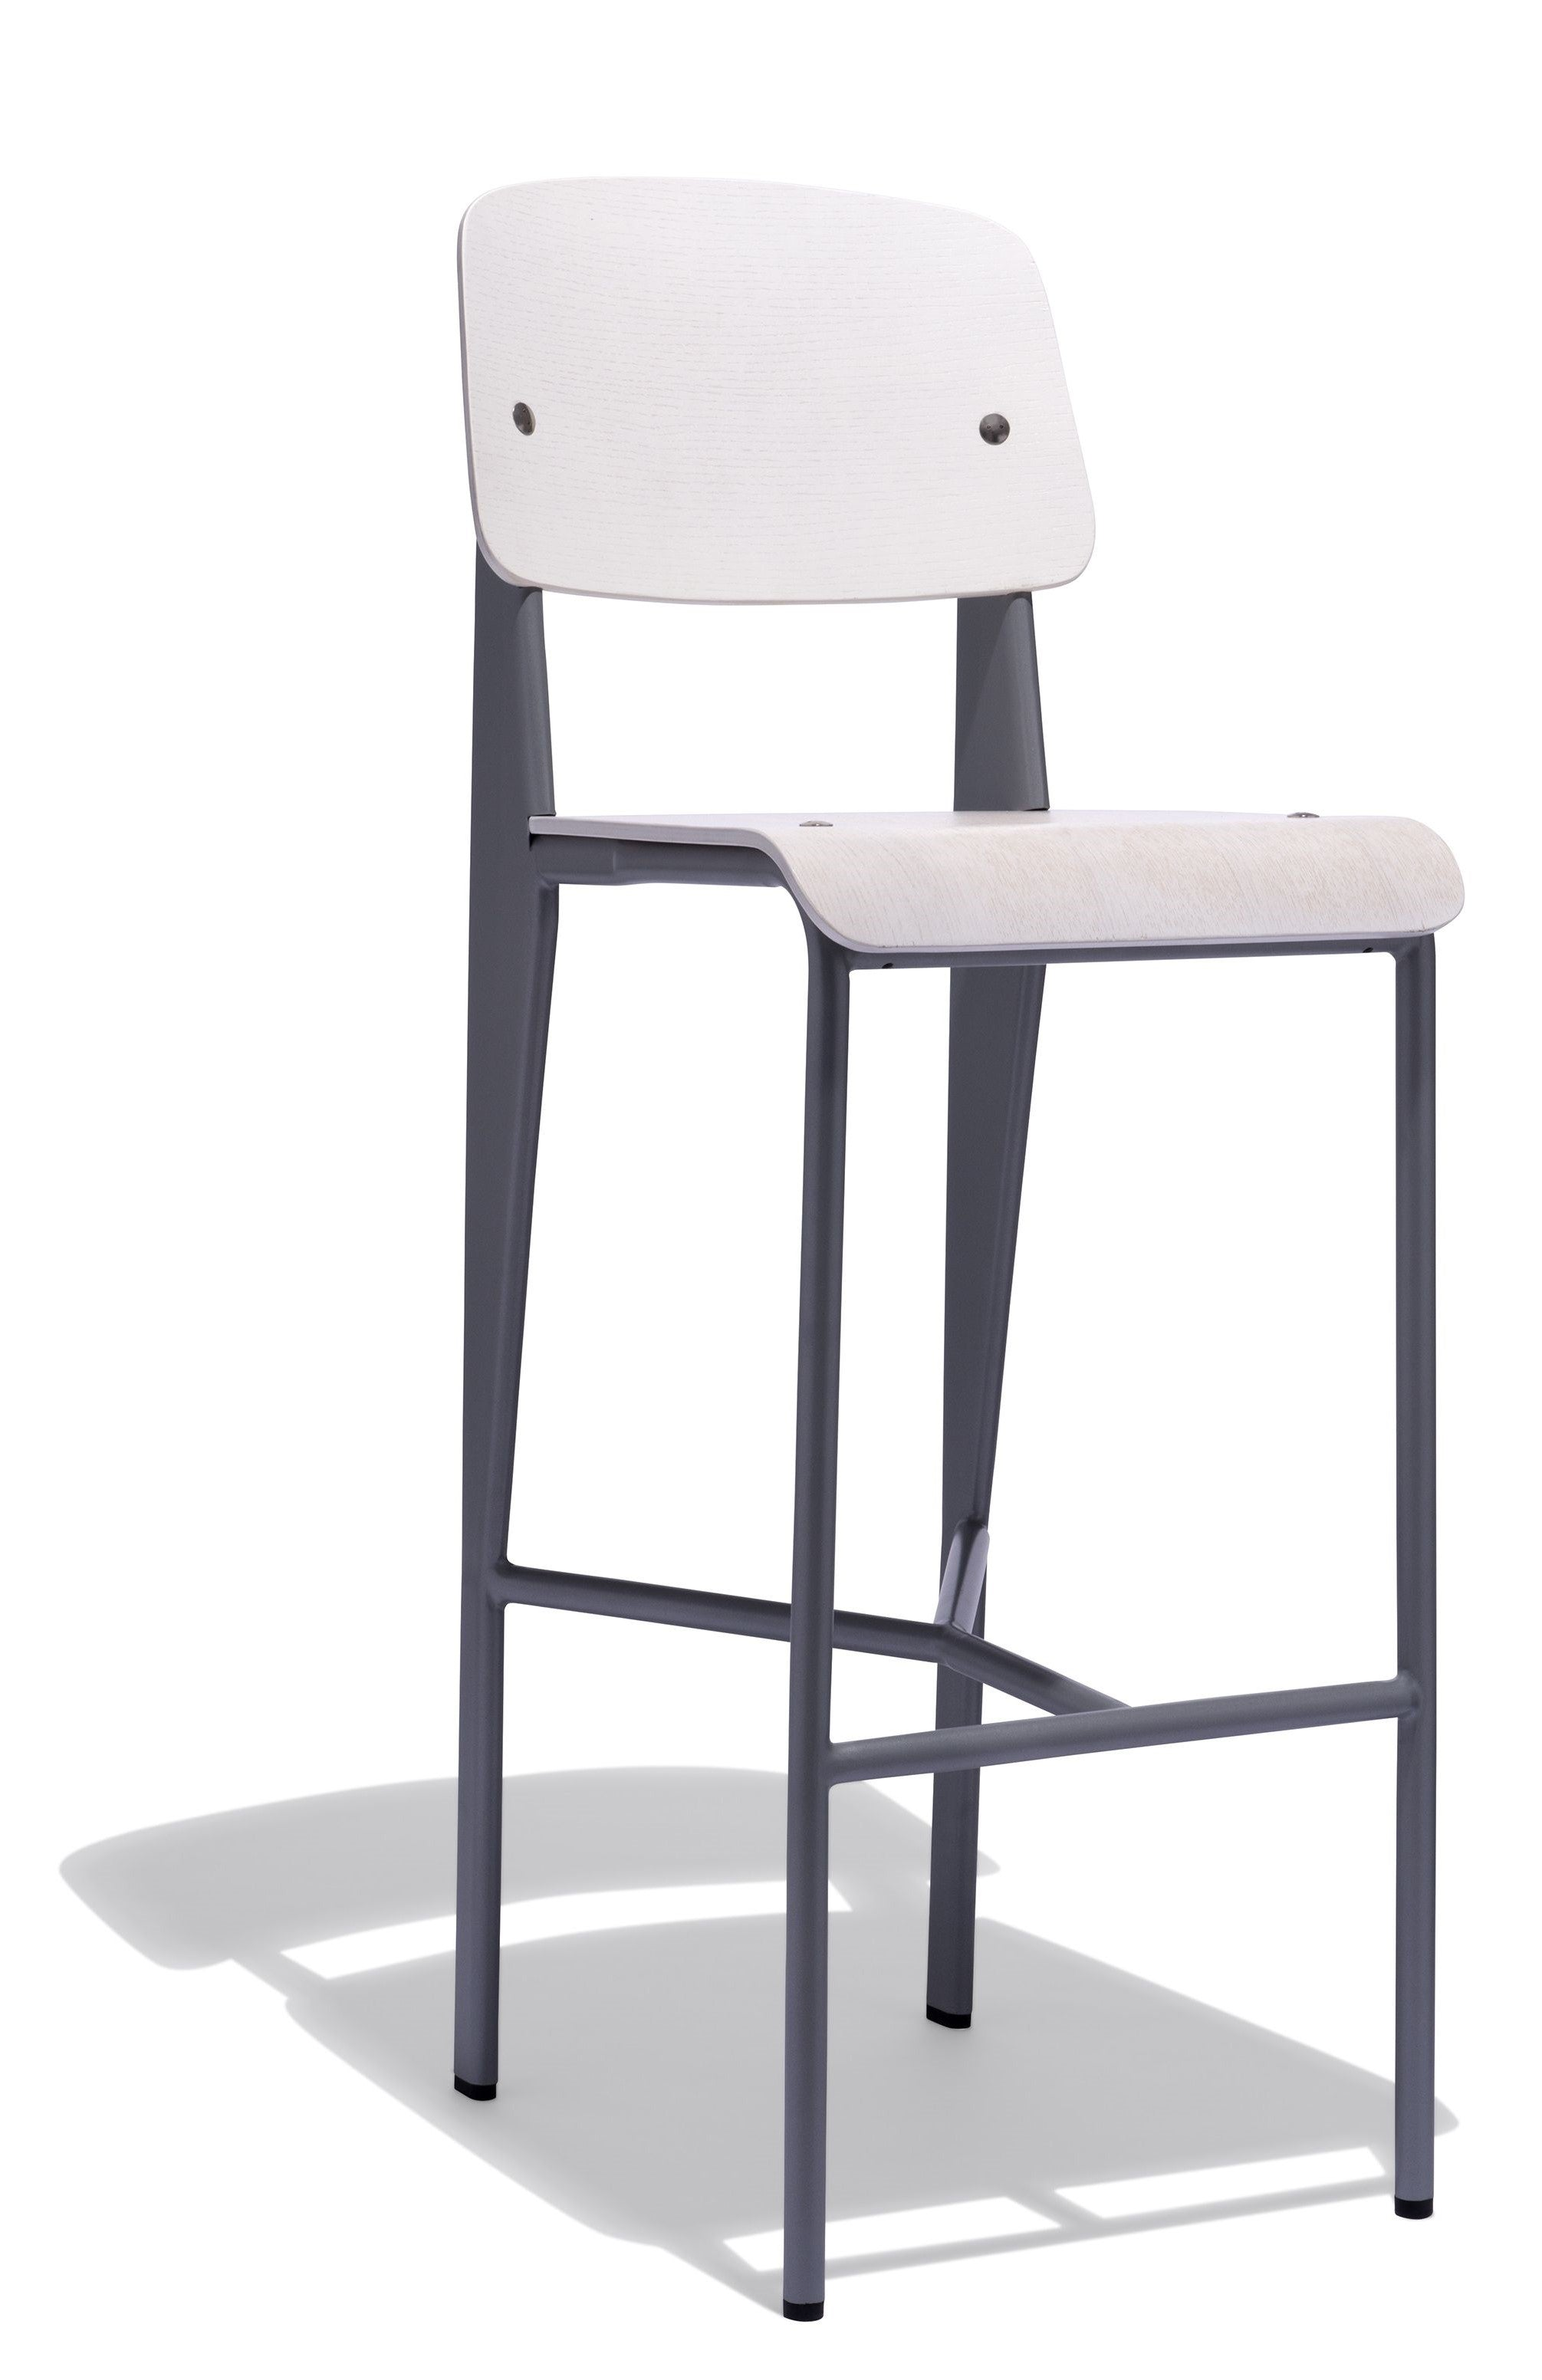 Excellent Replica Prouve Stool 650Mm Onthecornerstone Fun Painted Chair Ideas Images Onthecornerstoneorg